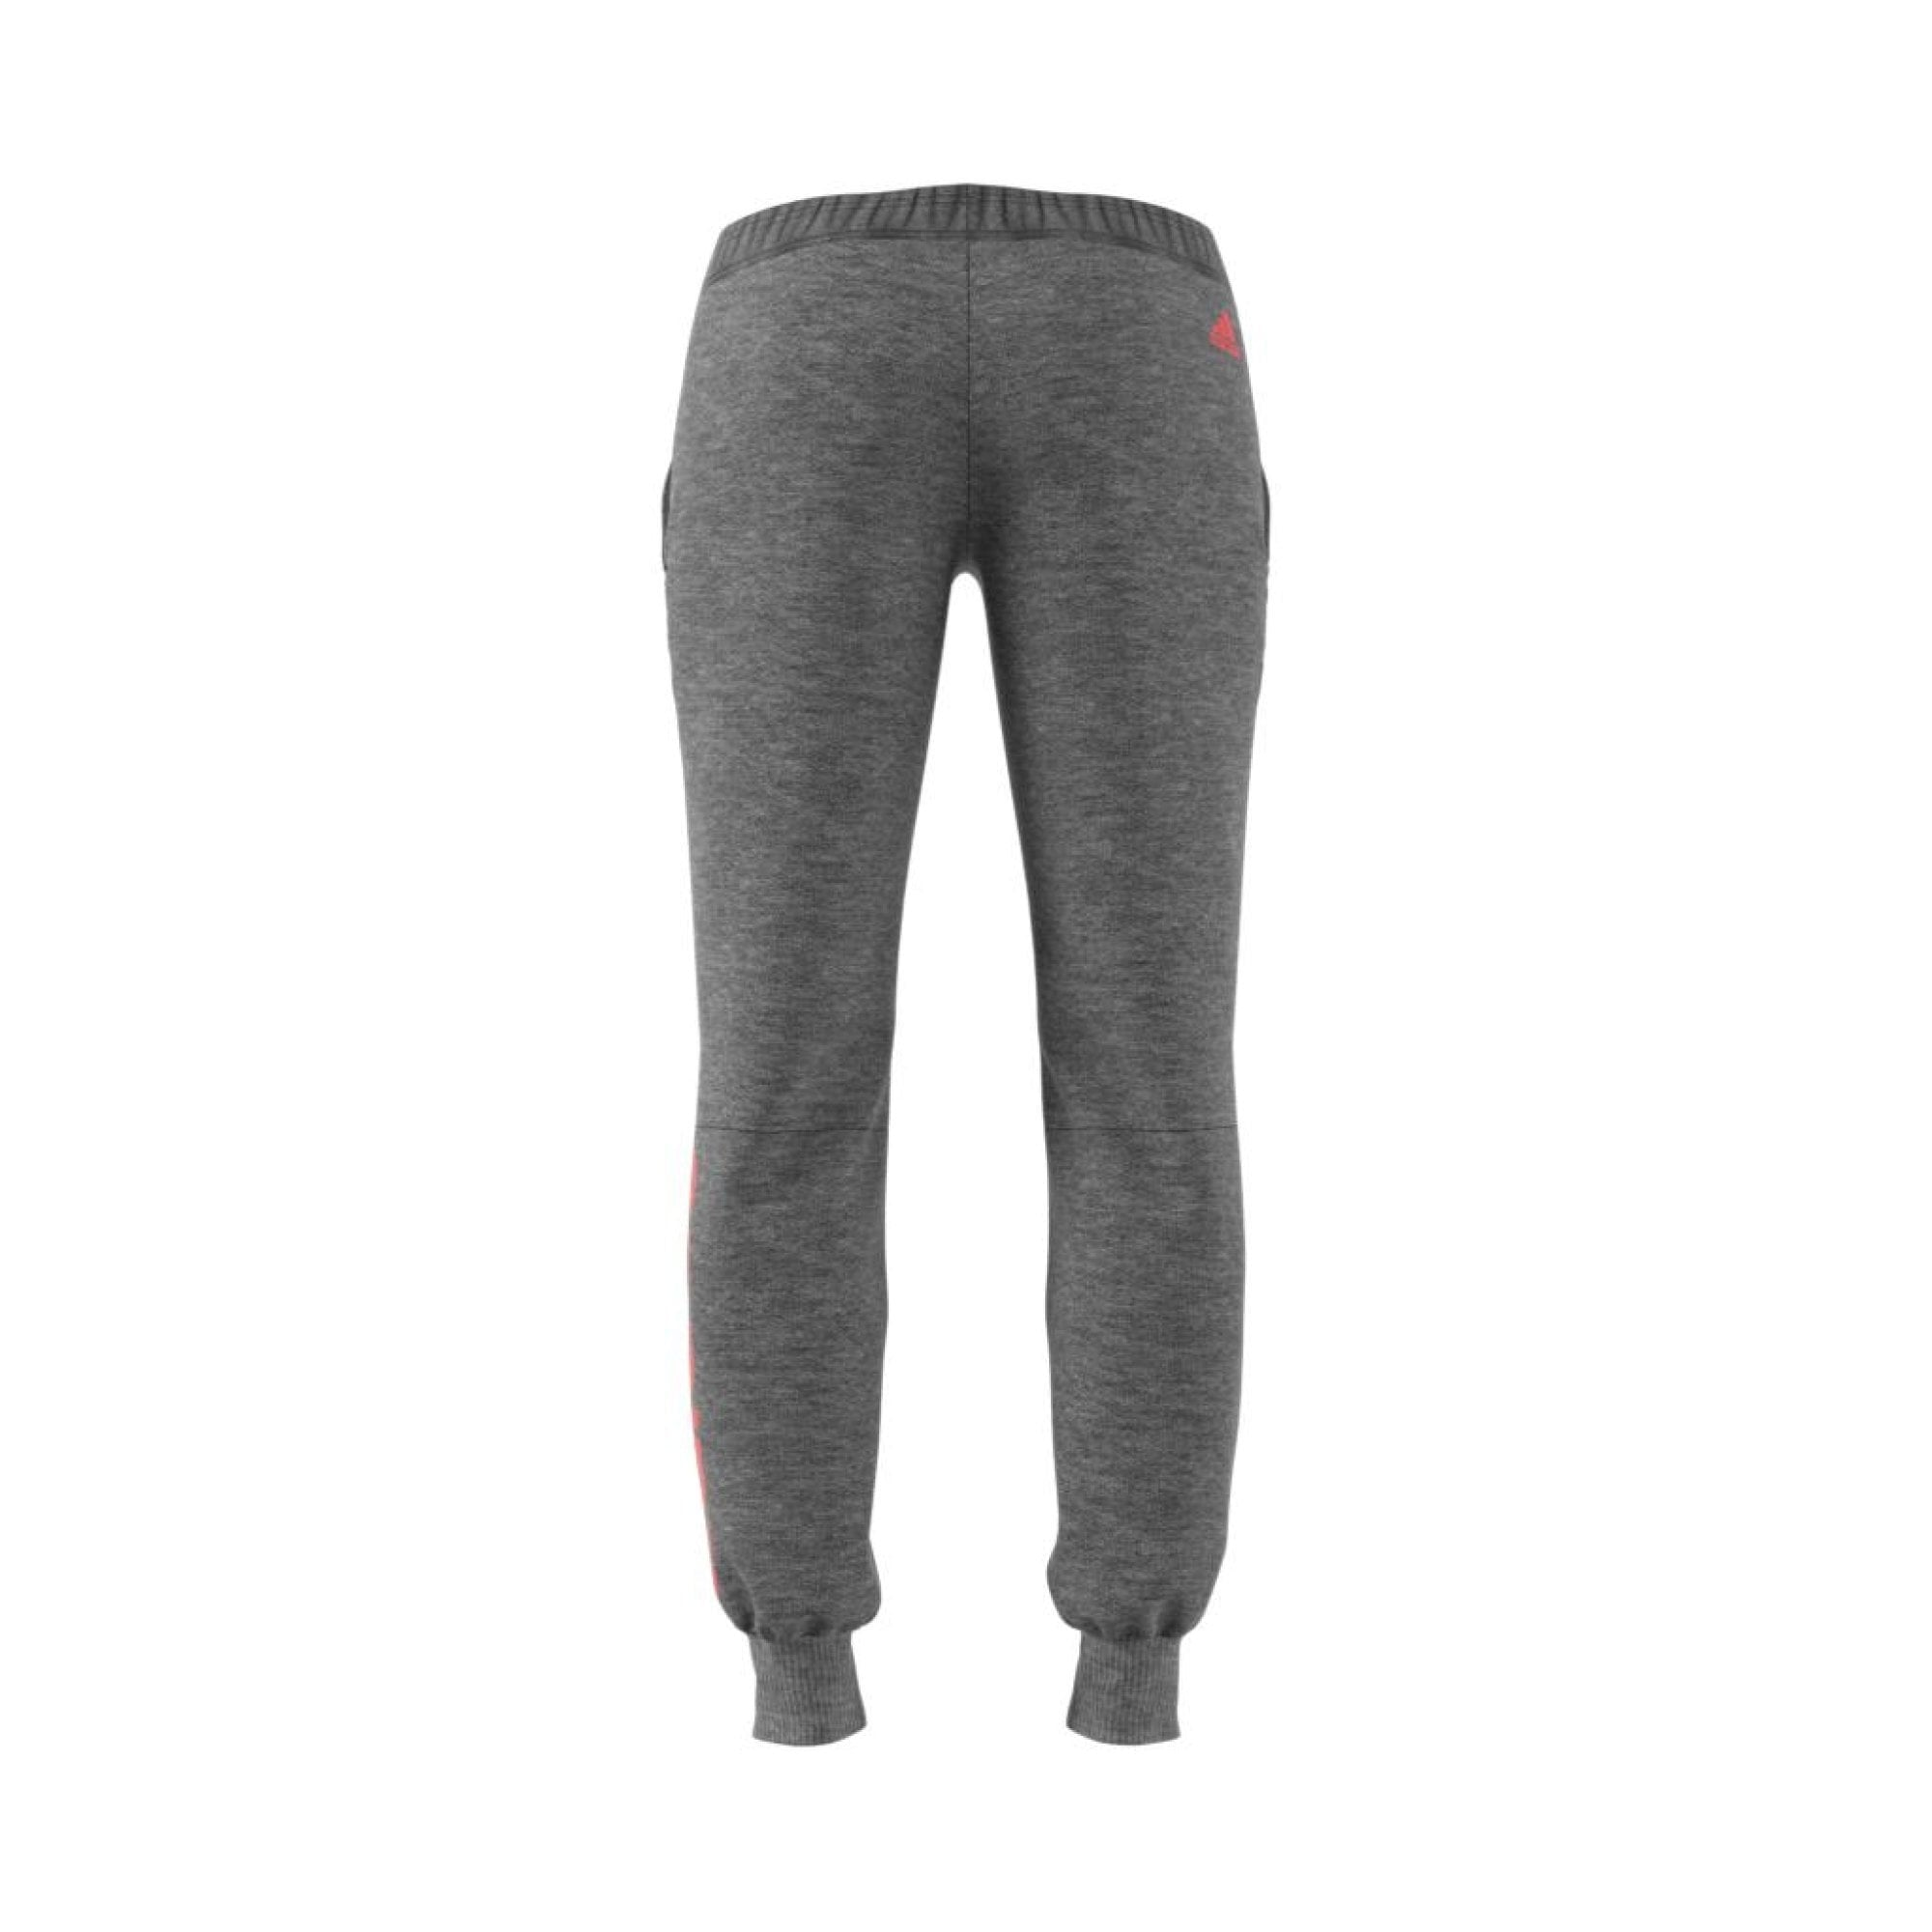 ADIDAS WOMENS ESSENTIALS LINEAR GREY FLEECE PANT - INSPORT